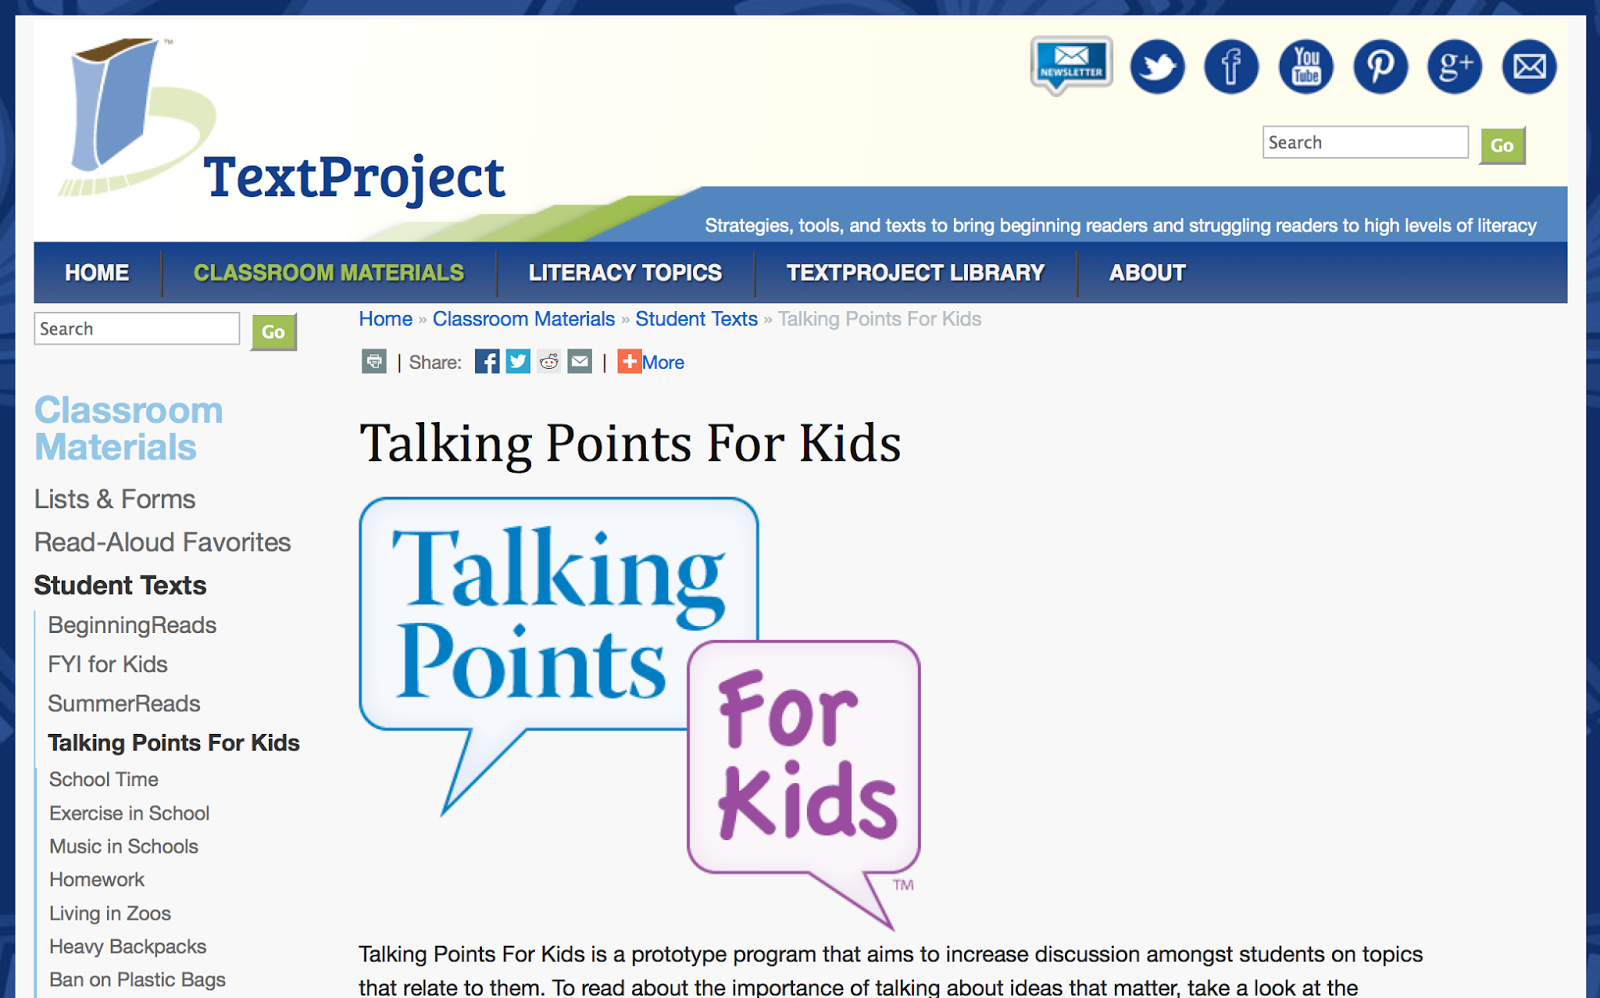 http://textproject.org/classroom-materials/students/talking-points-for-kids